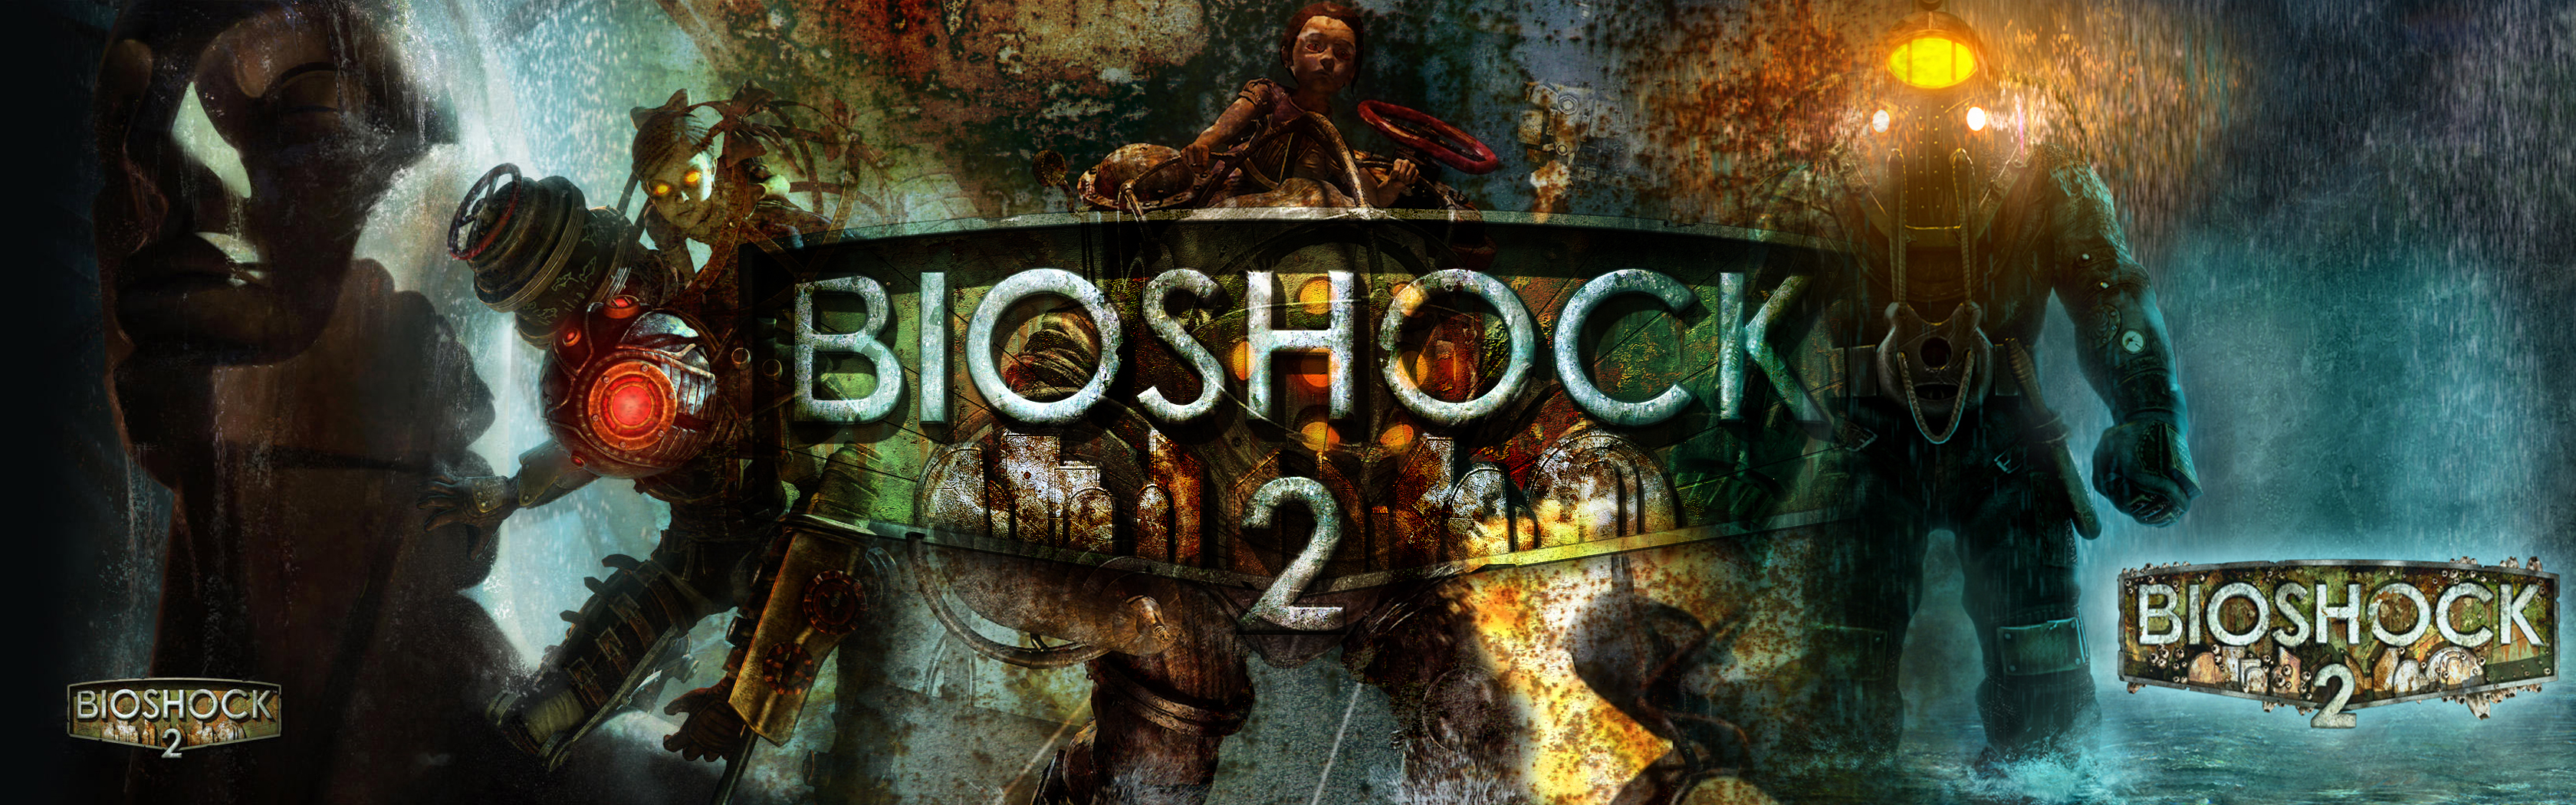 Bioshock 2 Wallpaper and Background Image | 3360x1050 | ID ...